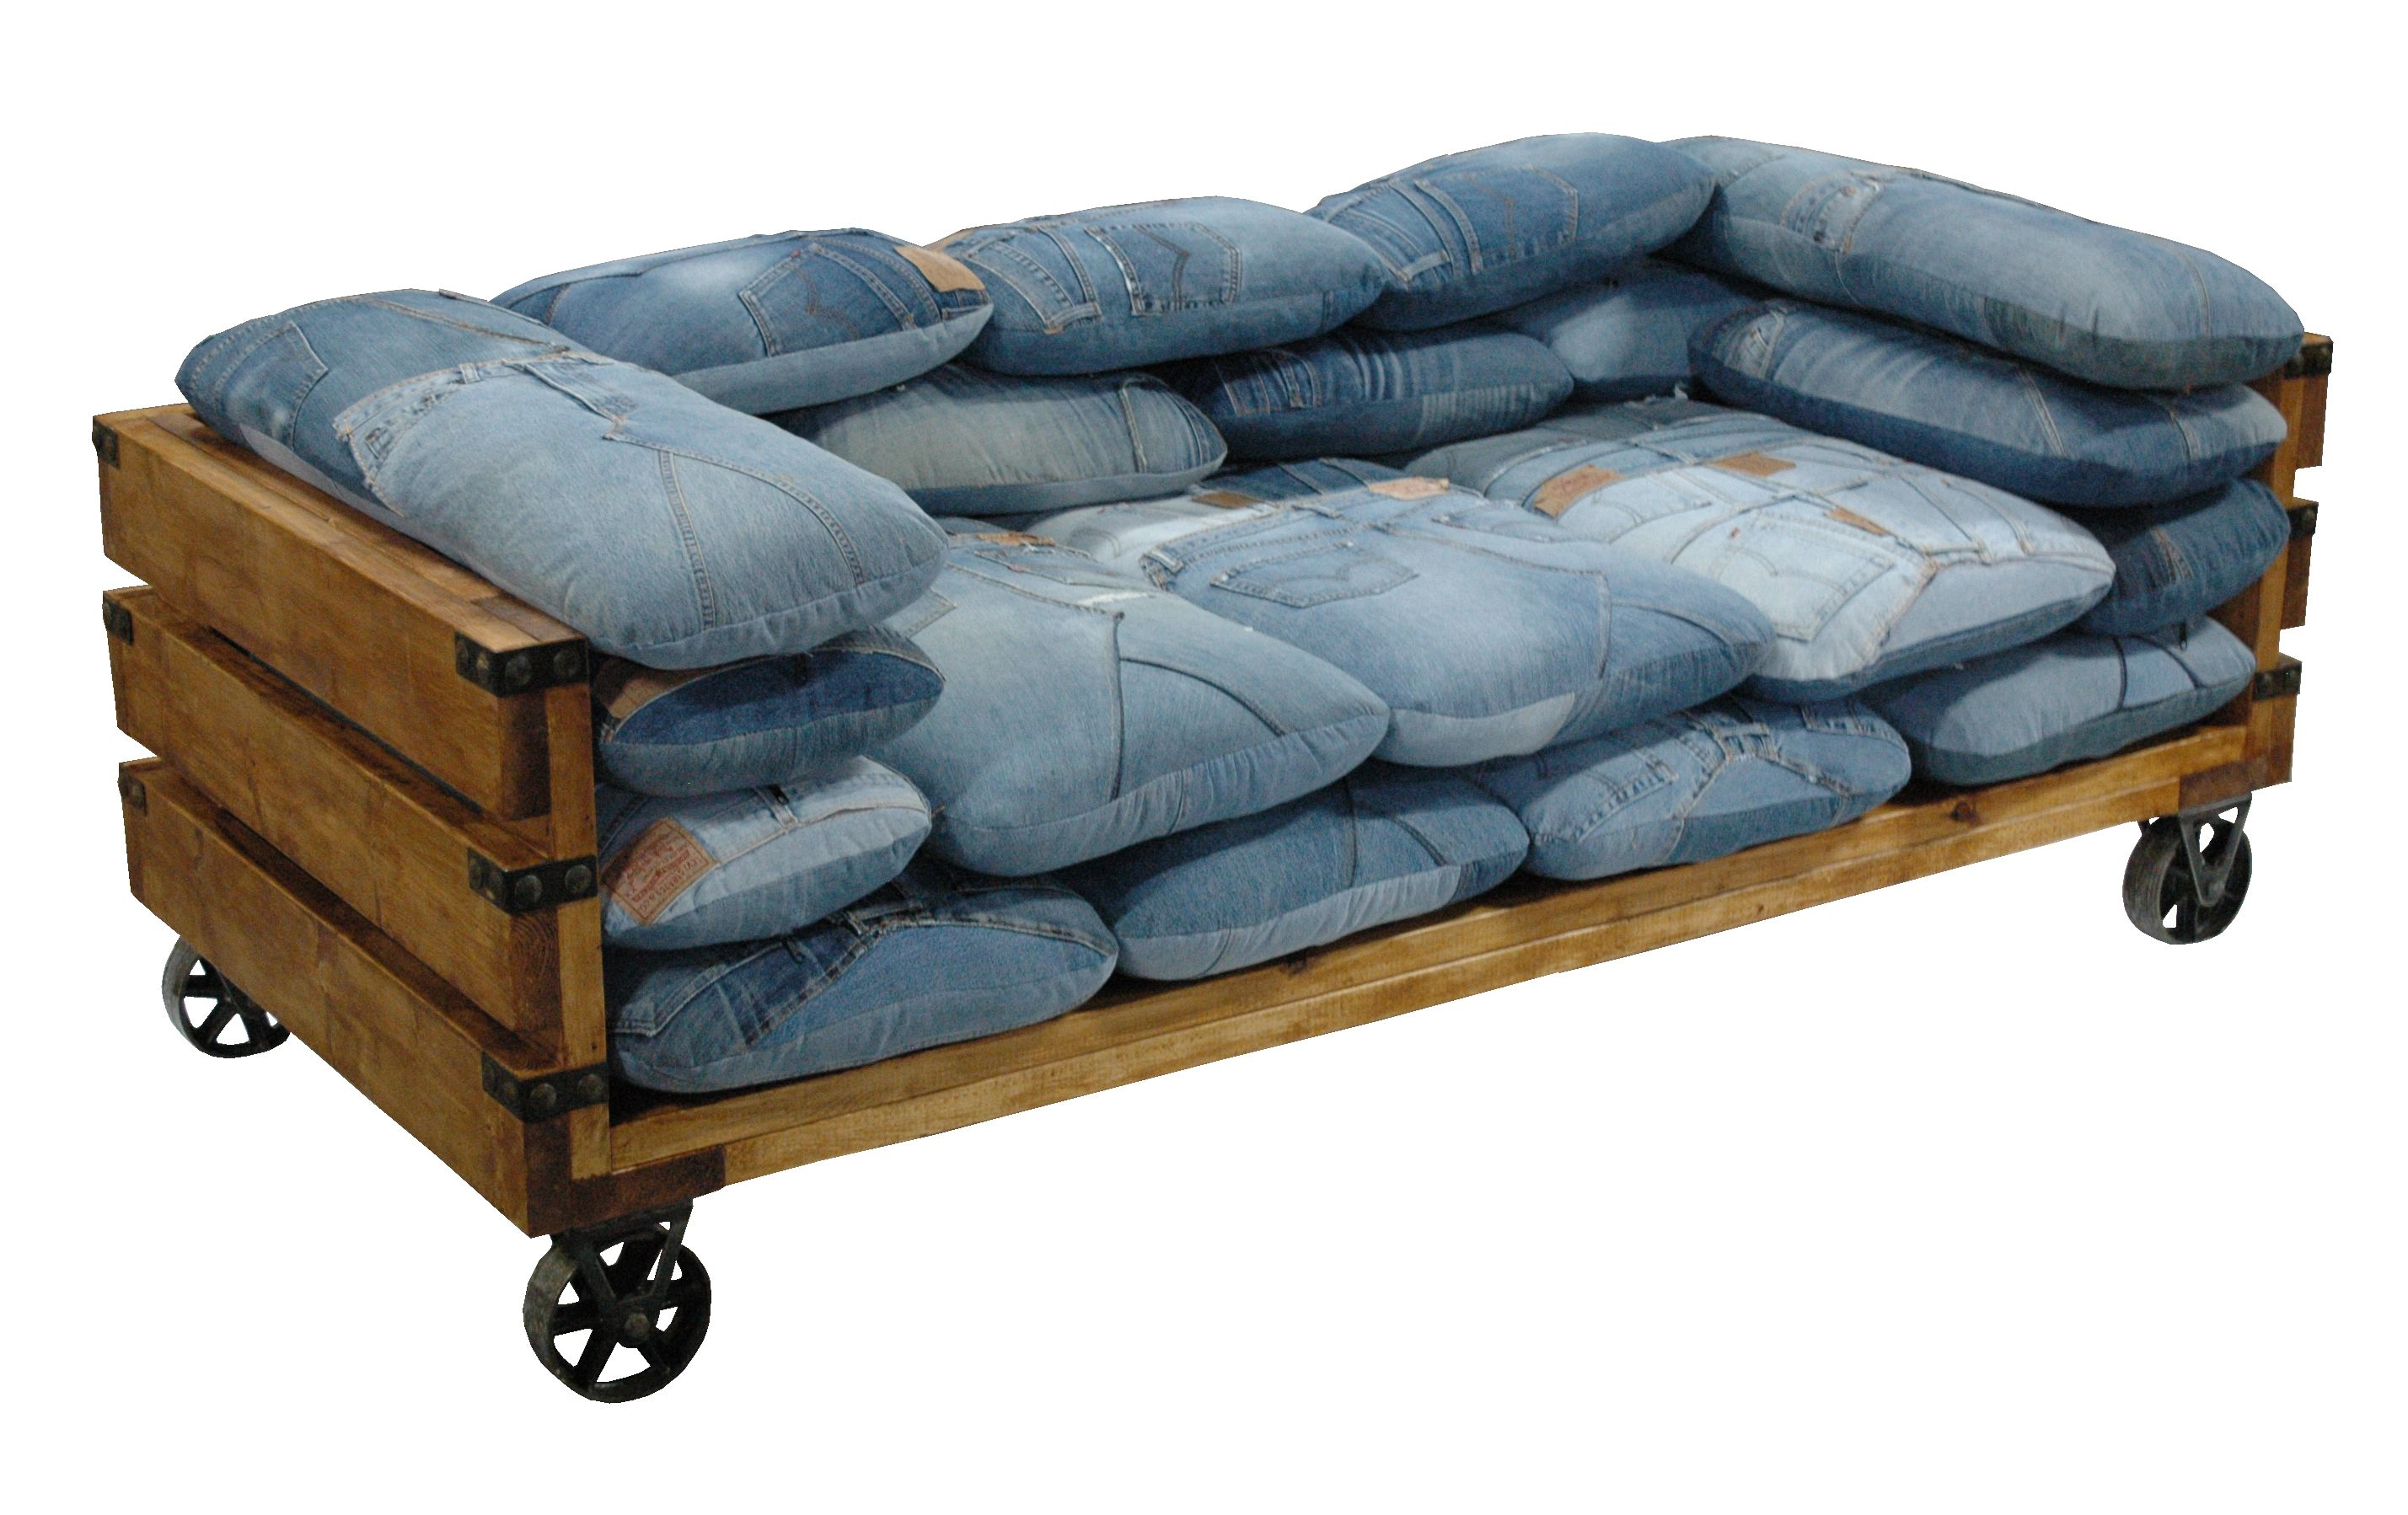 Halo Styles   Blue Jean Sofa With Canadian Pine Frame. Showroom: 212 N.